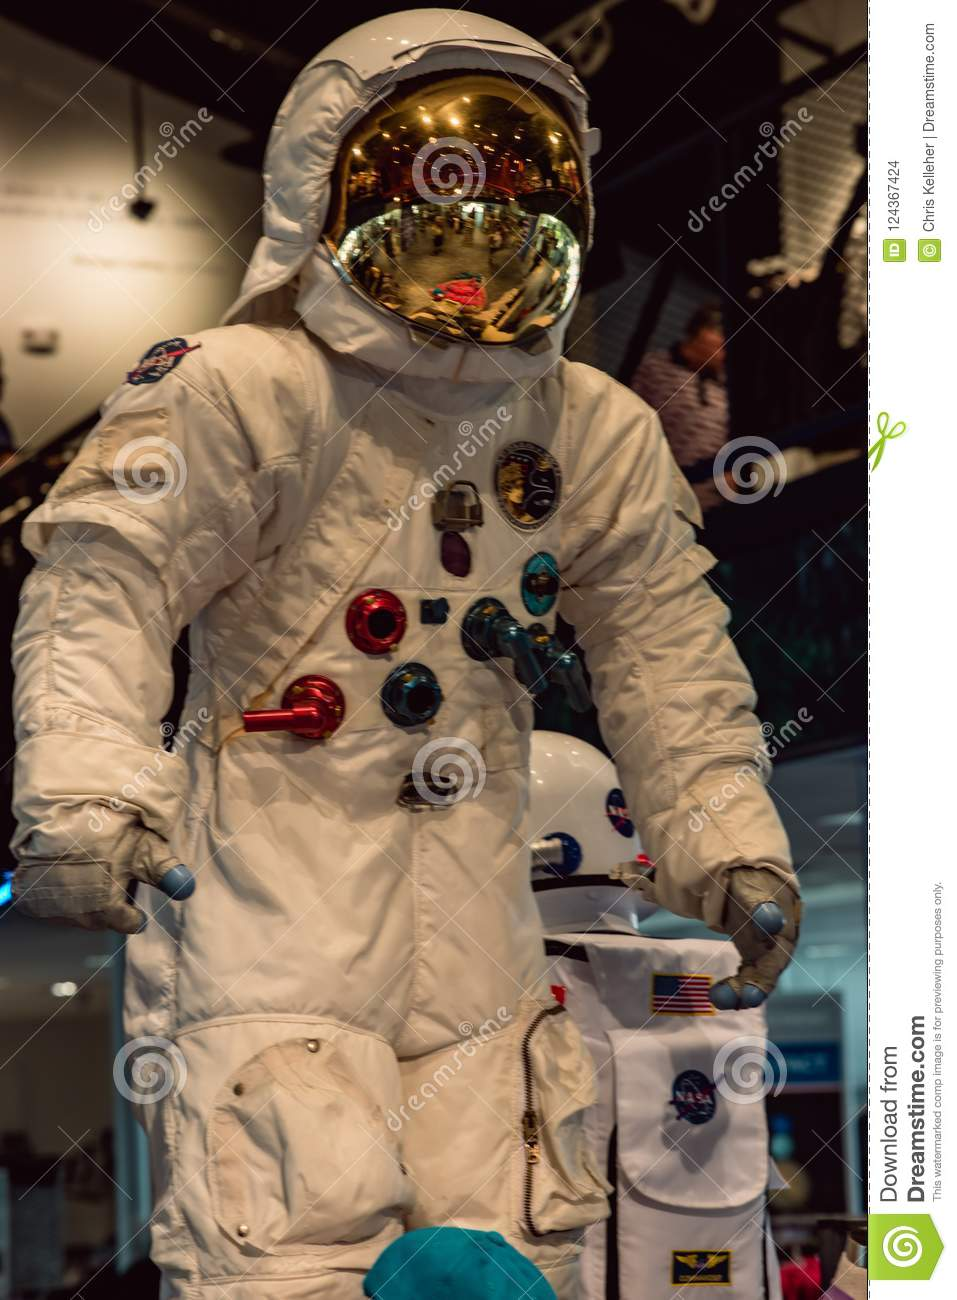 Cape Canaveral, Florida - 13. August 2018: Astronaut Suit an der NASA Kennedy Space Center